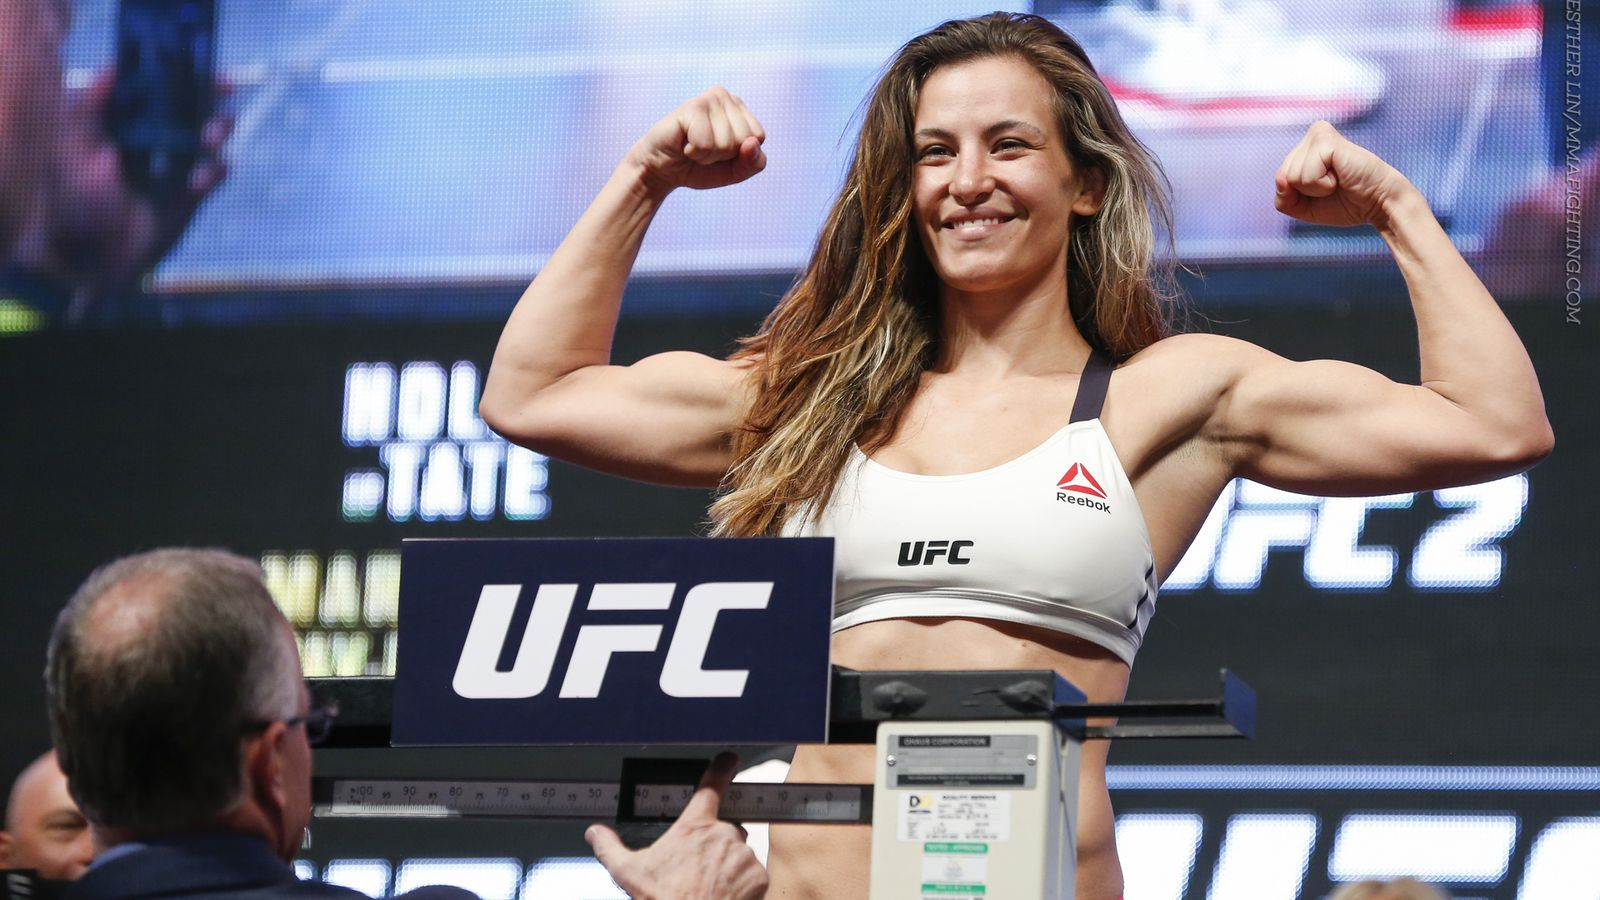 After UFC 200, Miesha Tate wants to take some time off ...